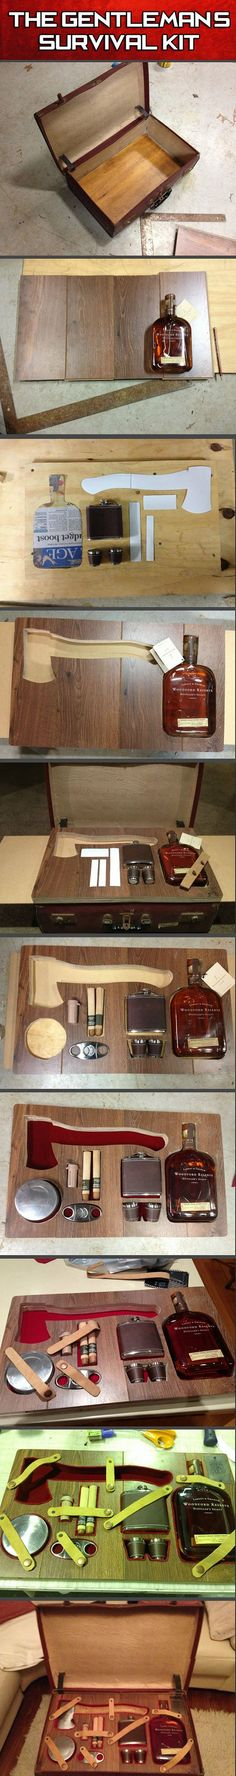 The gentleman's survival kit…so doing this - https://www.facebook.com/different.solutions.page